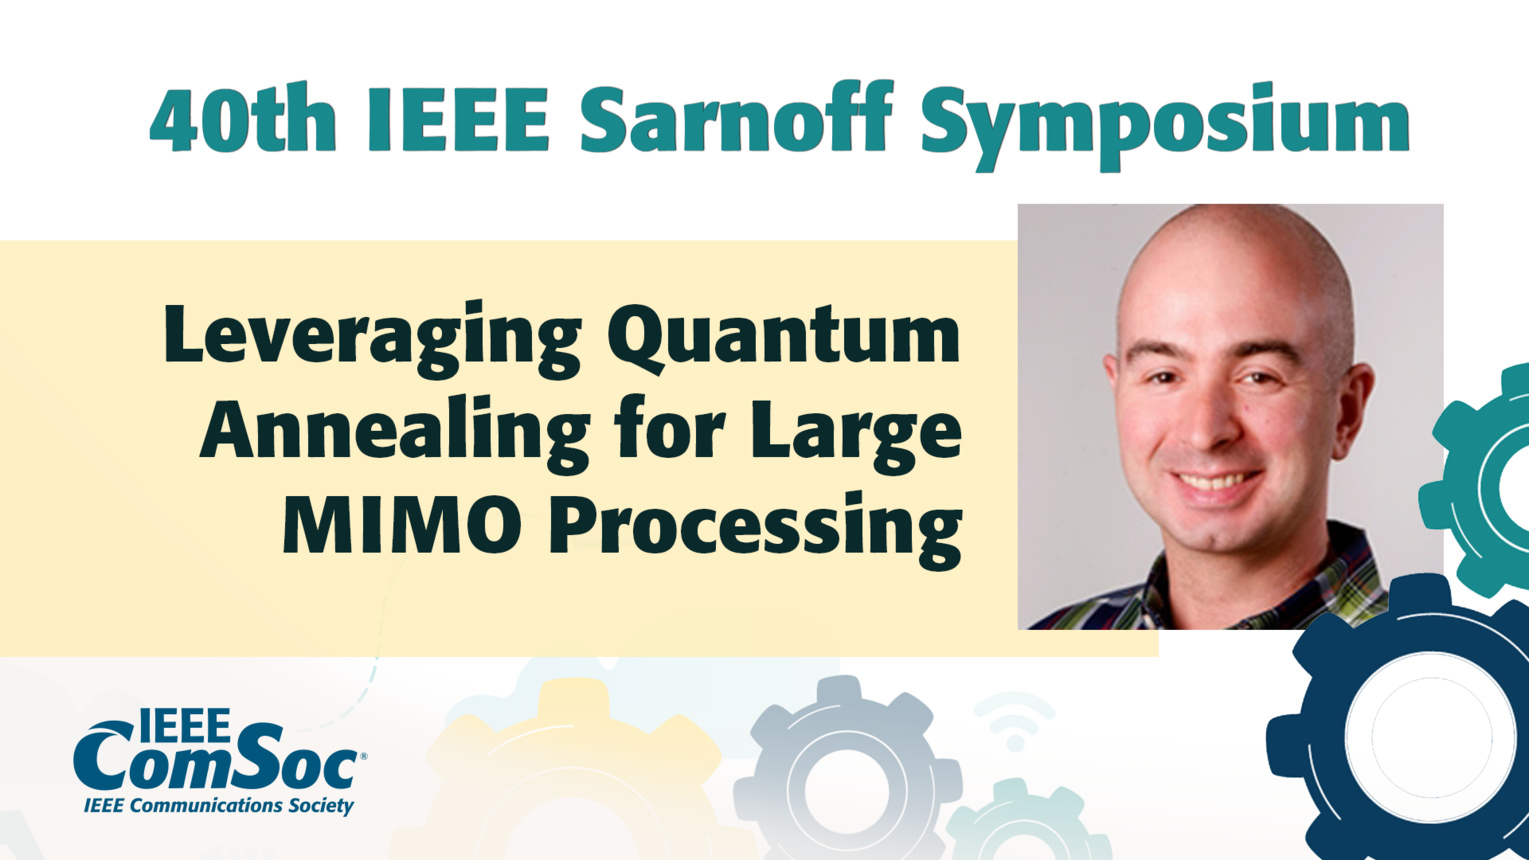 Leveraging Quantum Annealing for Large MIMO Processing - Kyle Jamieson - IEEE Sarnoff Symposium, 2019